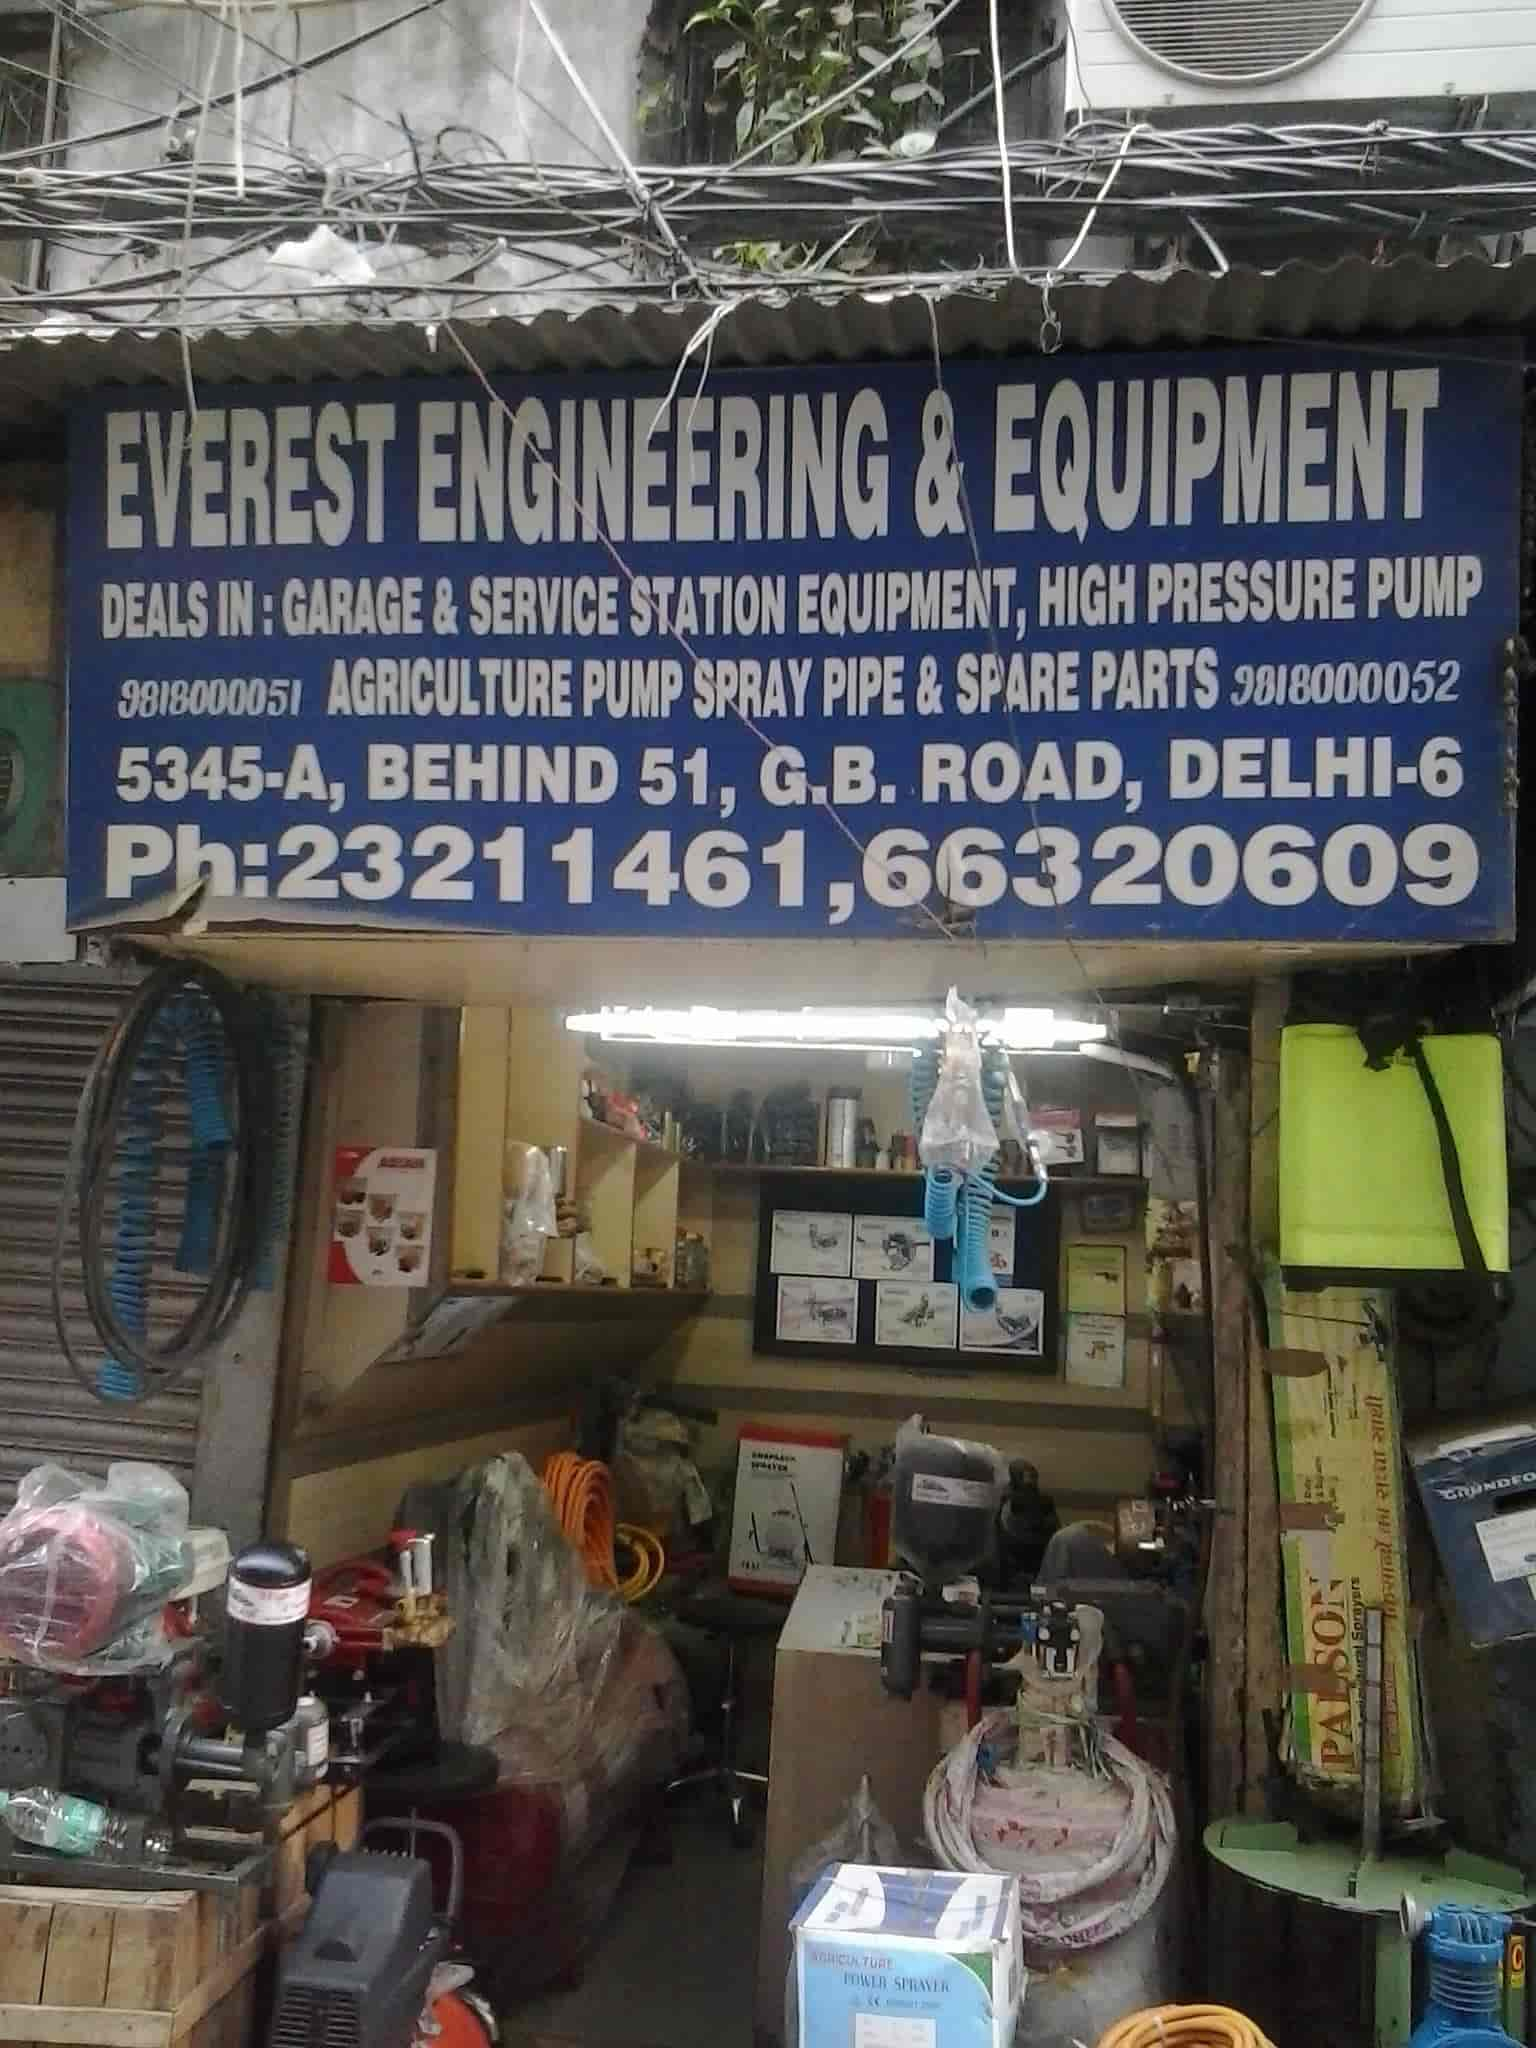 Everest Engineering Equipment Gb Road Car Lifting Equipment